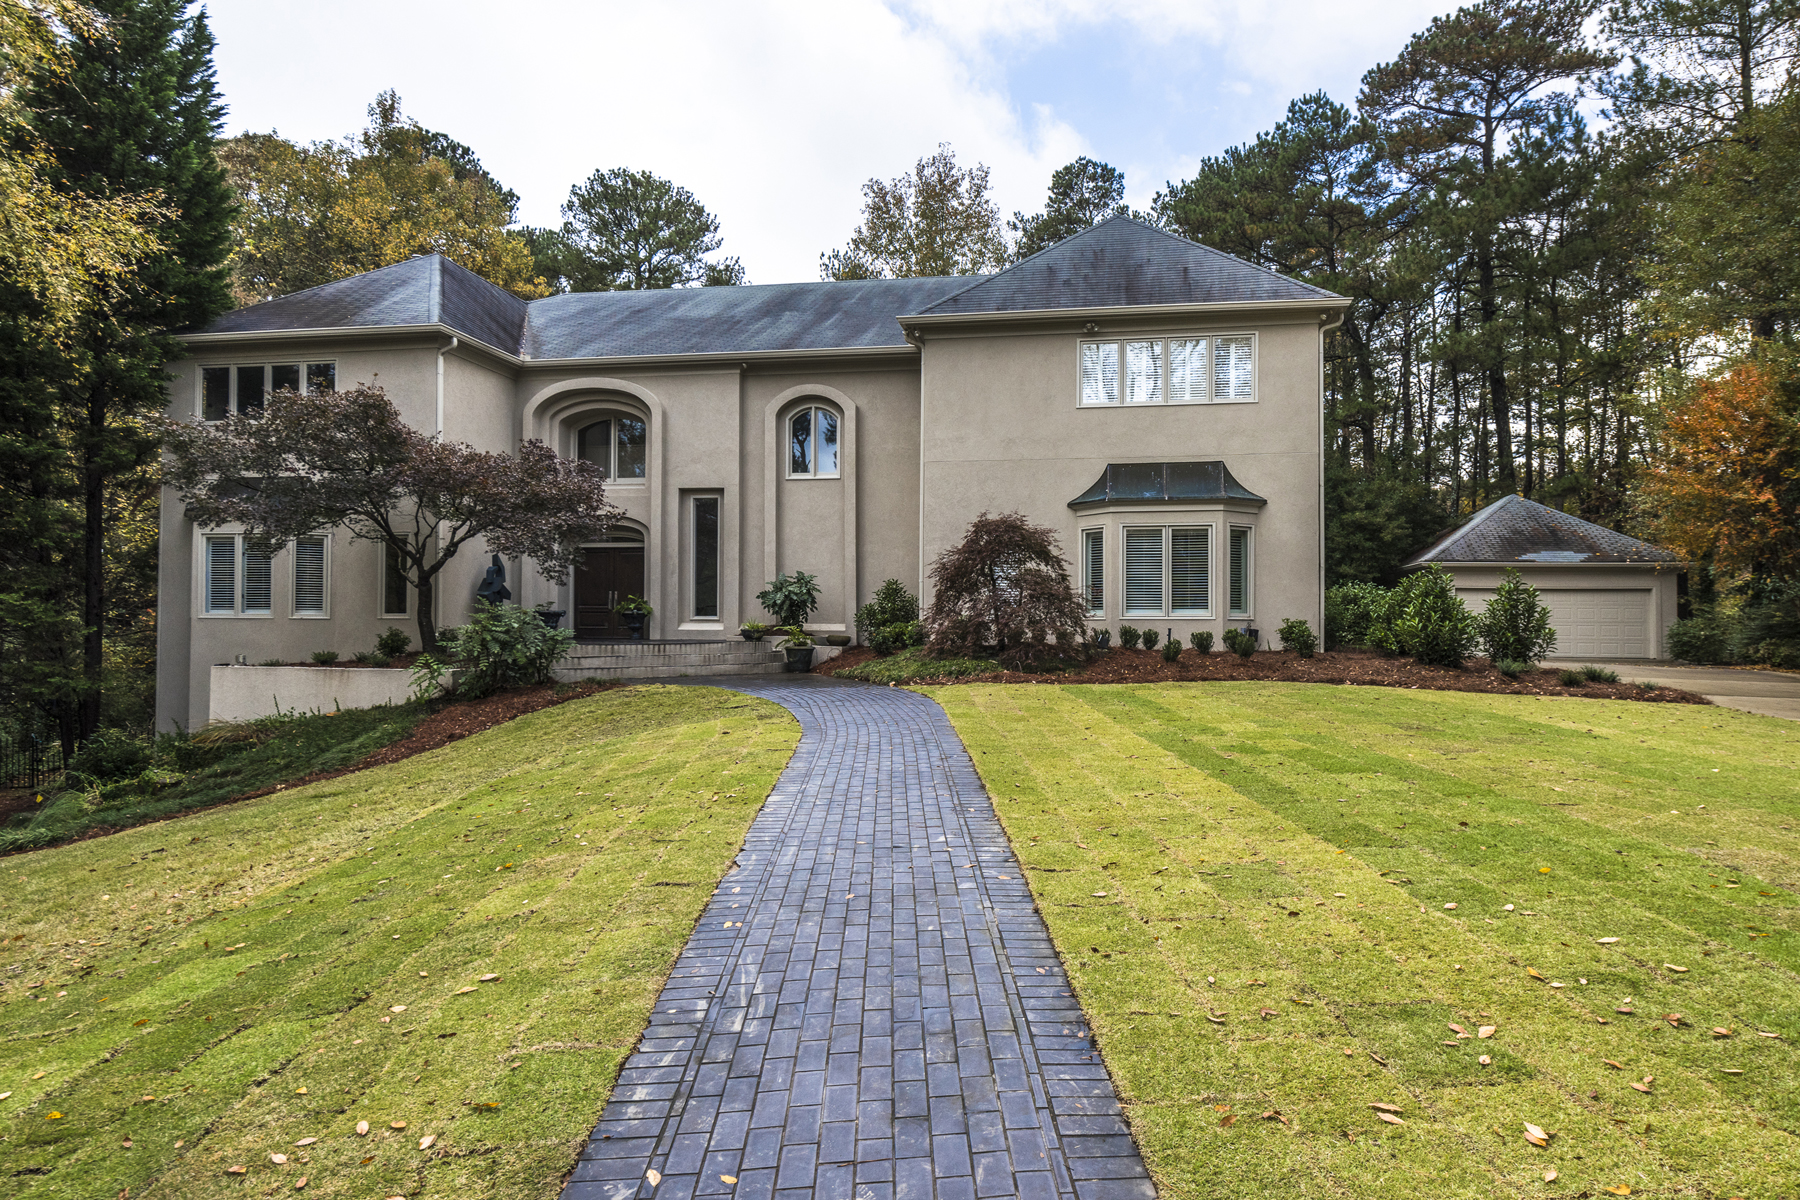 Casa Unifamiliar por un Venta en Sophisticated Light Filled Contemporary 210 N Chambord Drive NW Atlanta, Georgia 30327 Estados Unidos